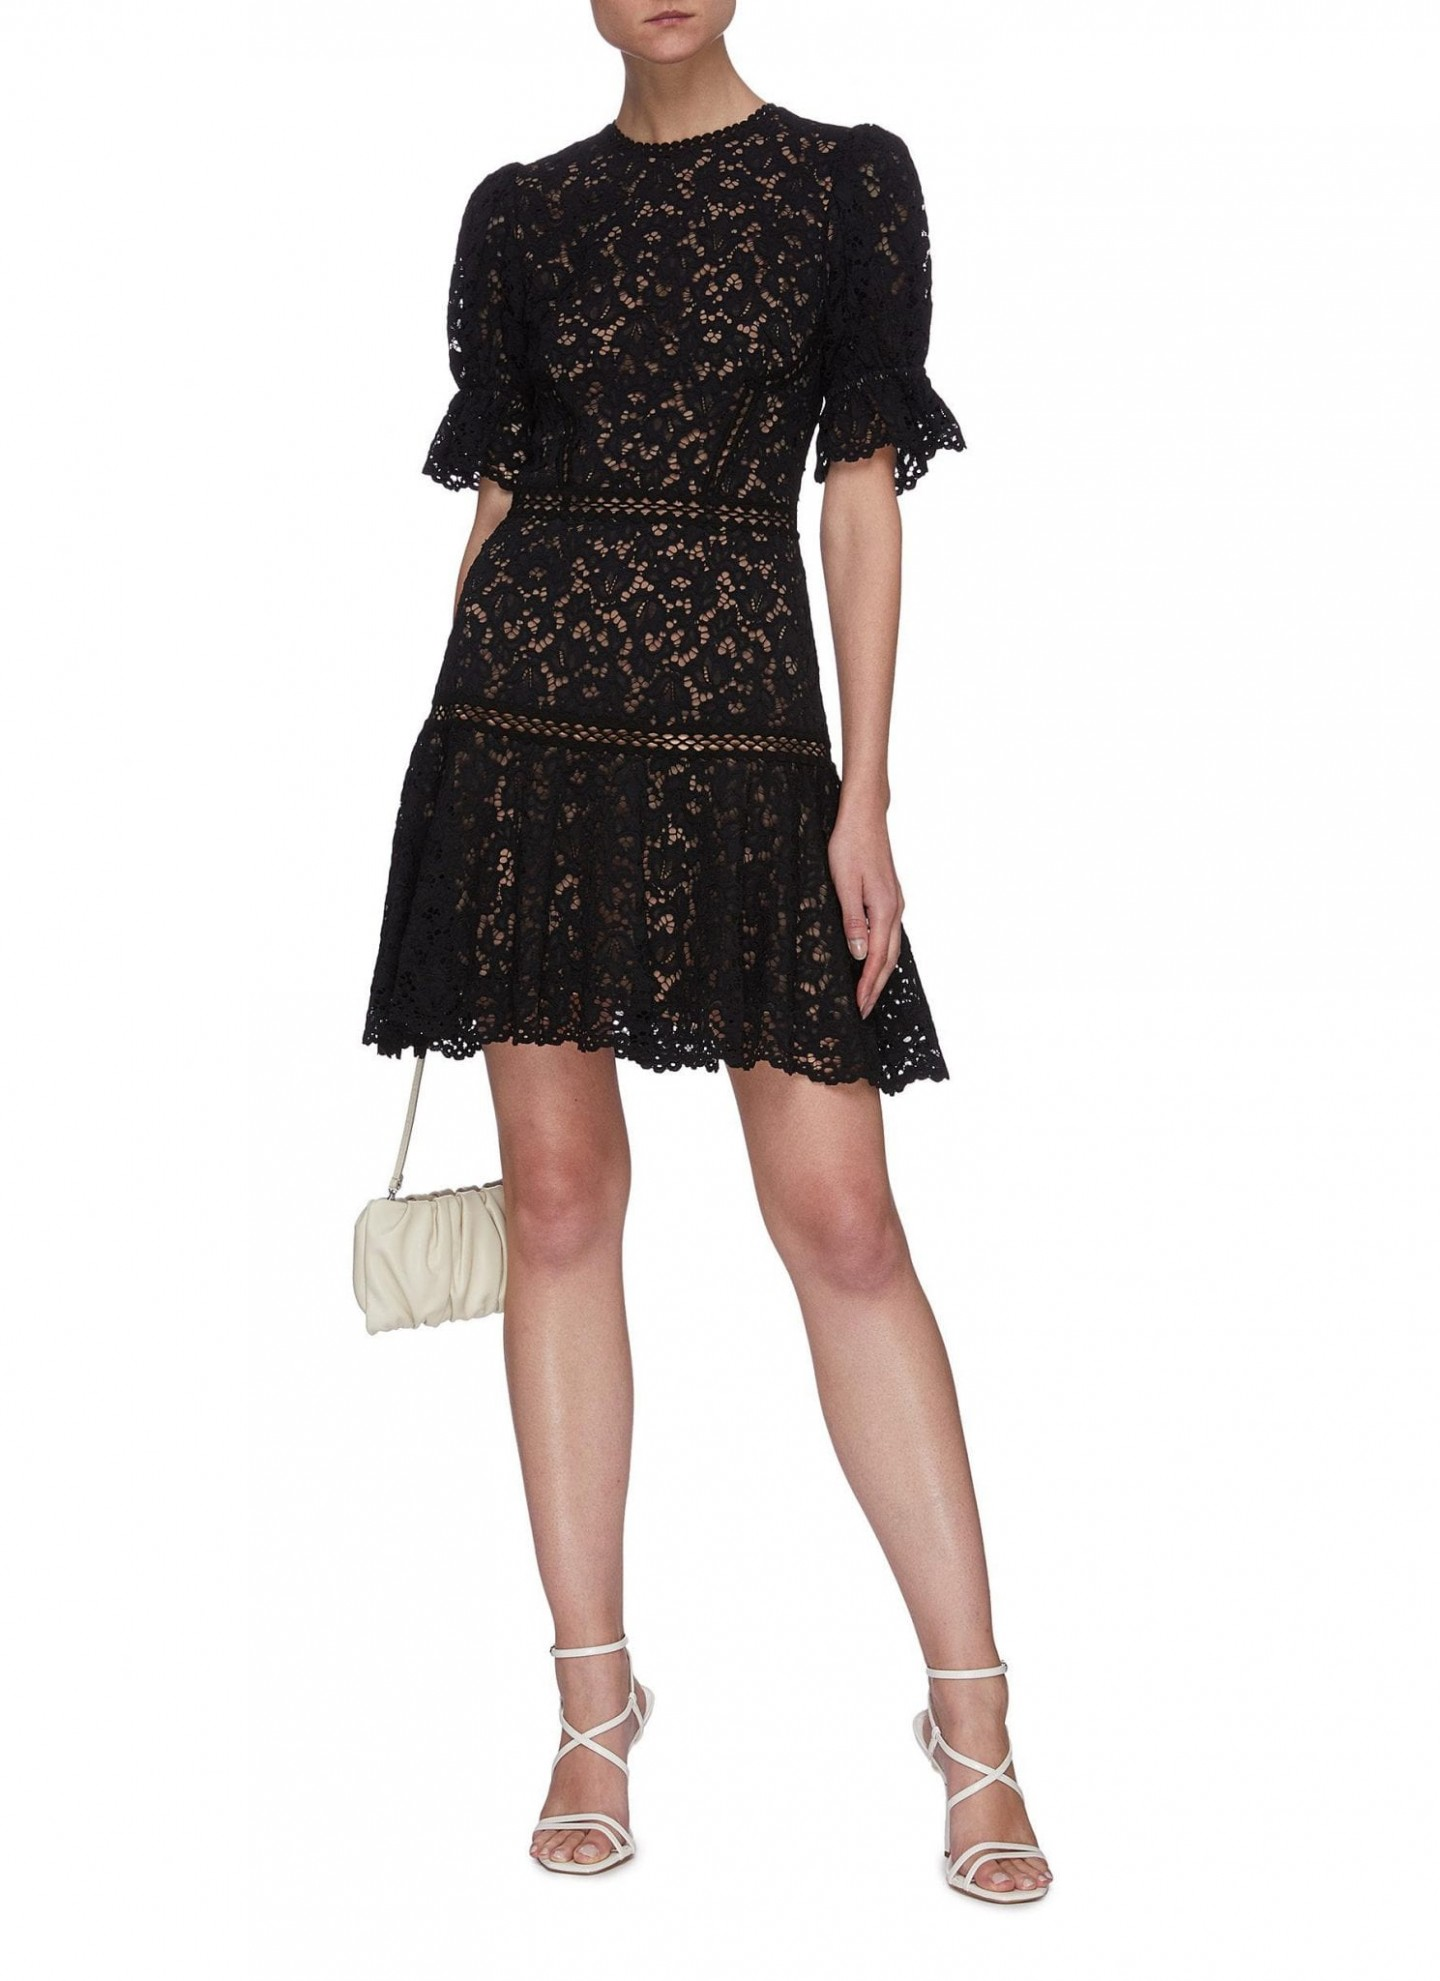 JONATHAN SIMKHAI Puff Sleeve Lace Mini Dress